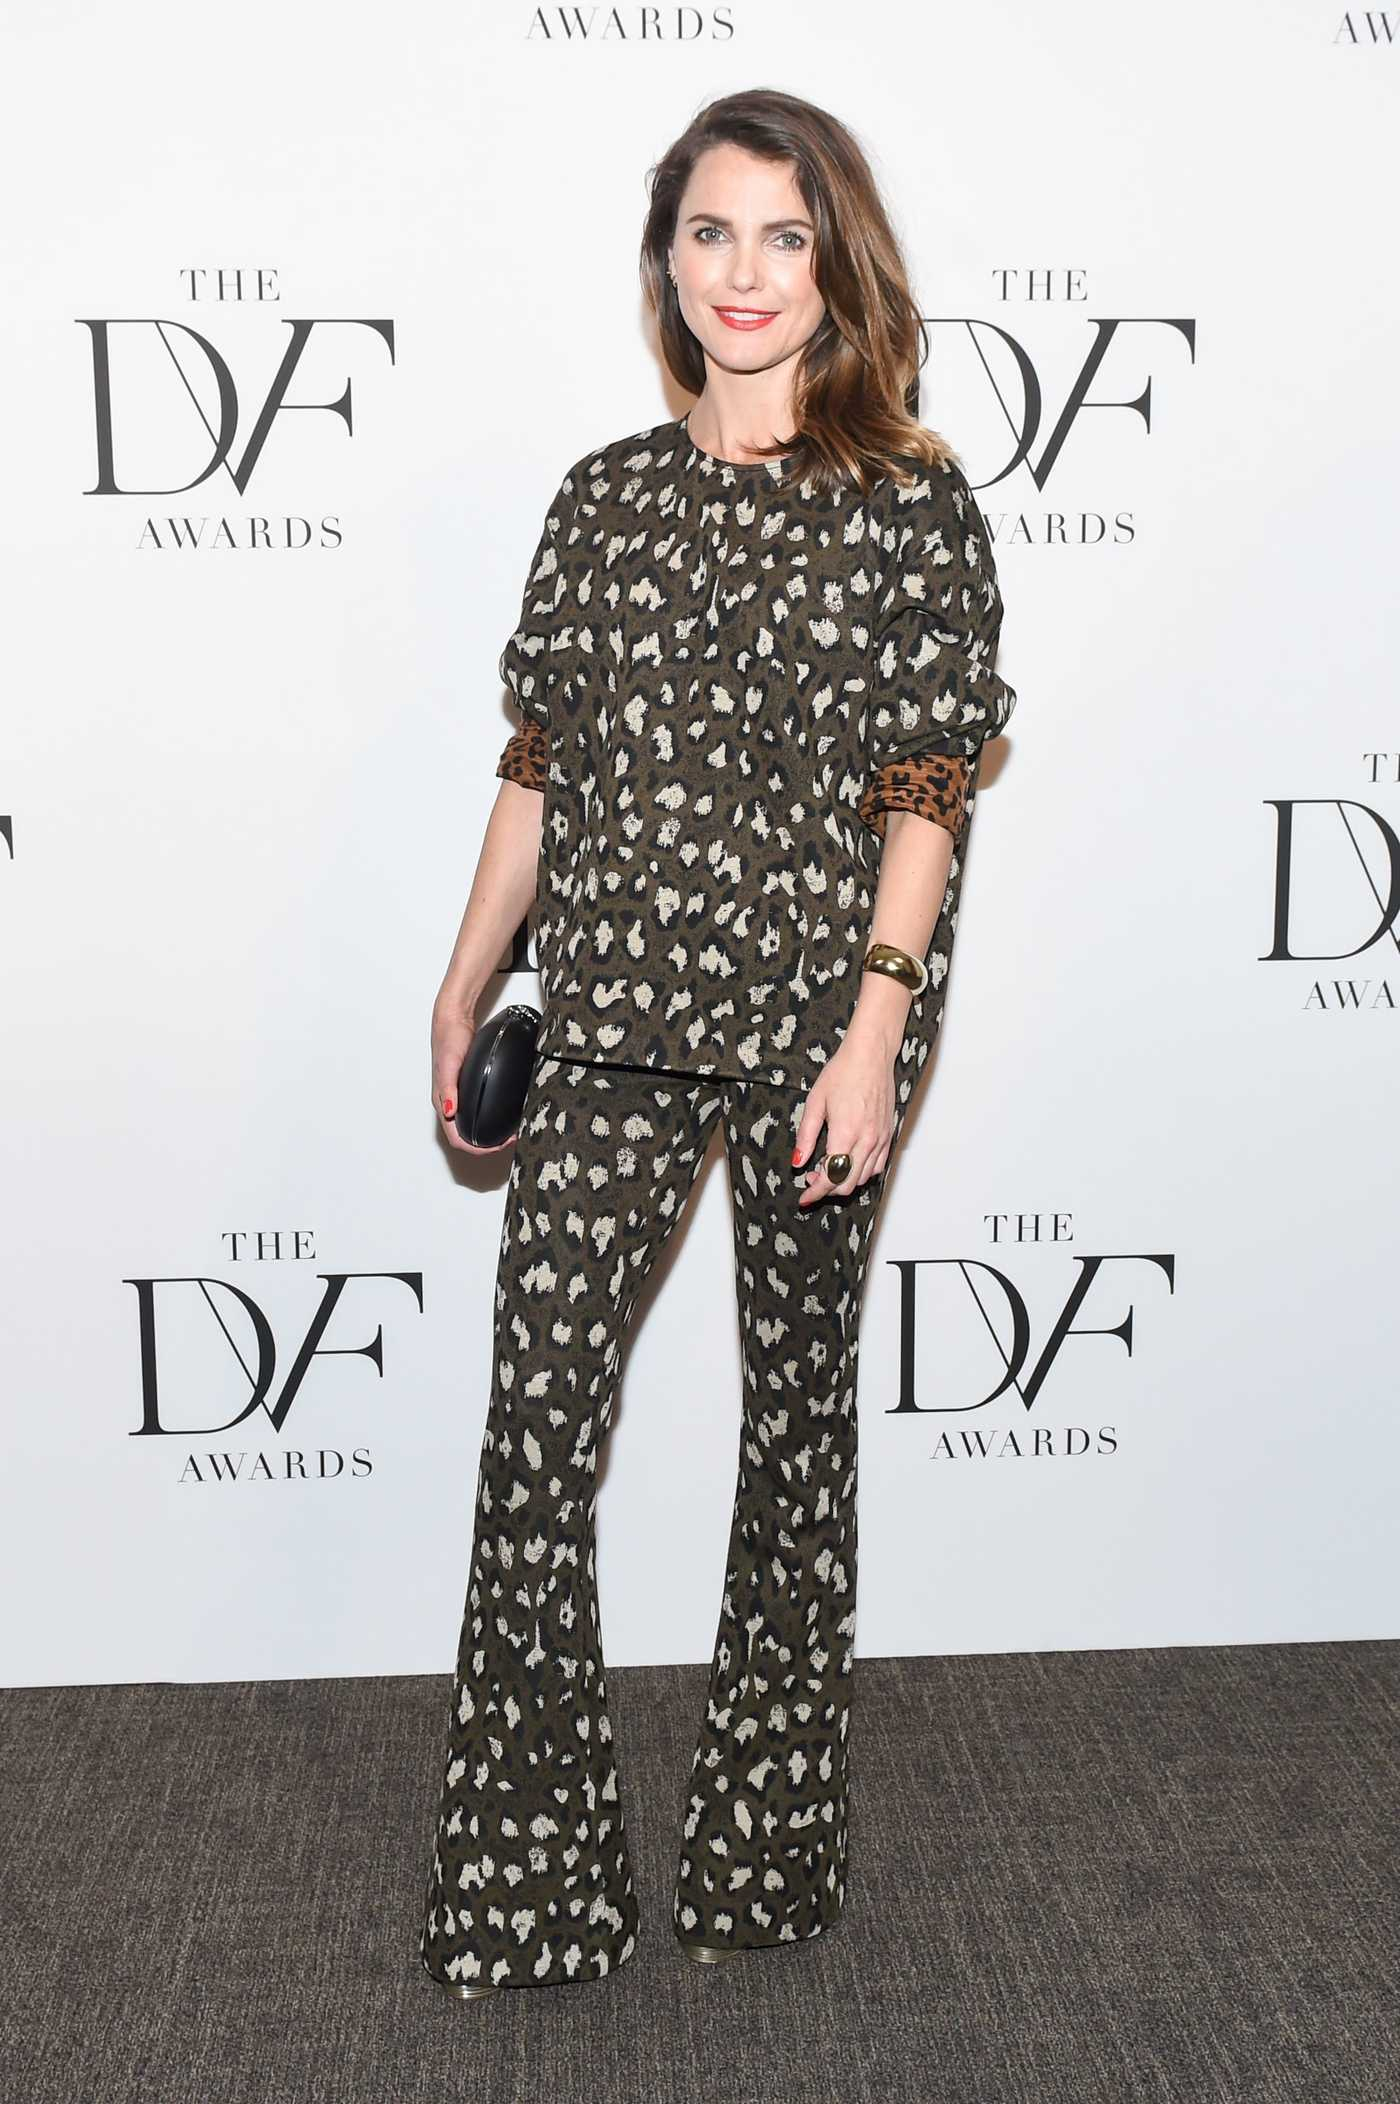 Keri Russell at the 9th Annual DVF Awards in New York 04/13/2018